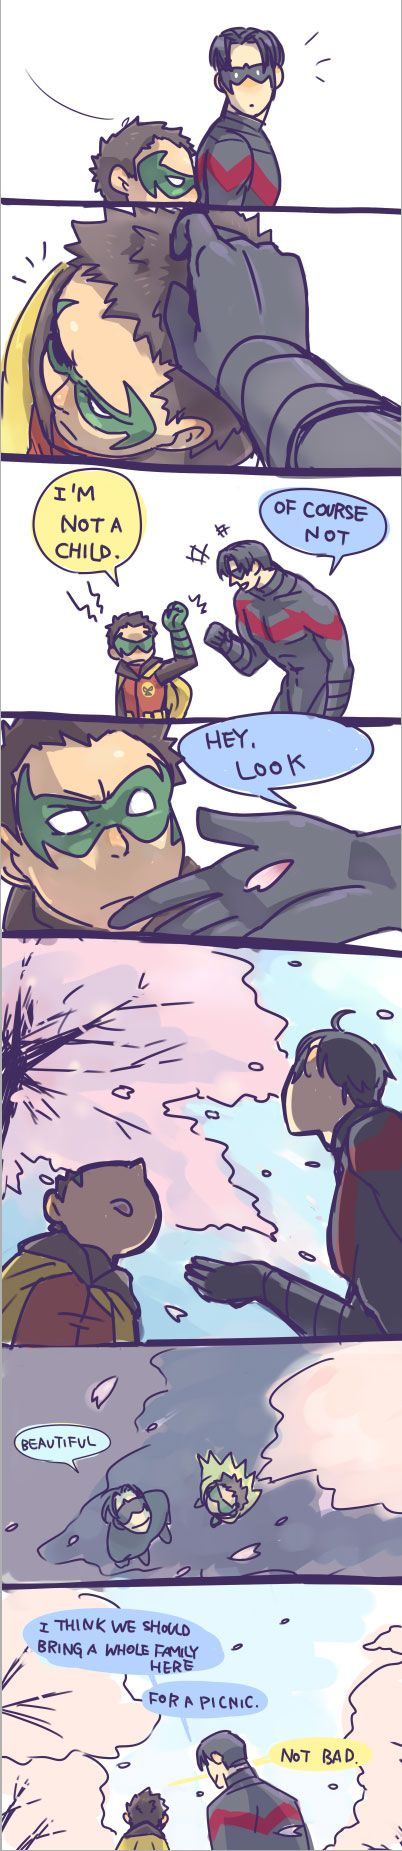 Dick Grayson and Damian please just one day the bat fam can just have a little peace and happiness great idea boys!!!